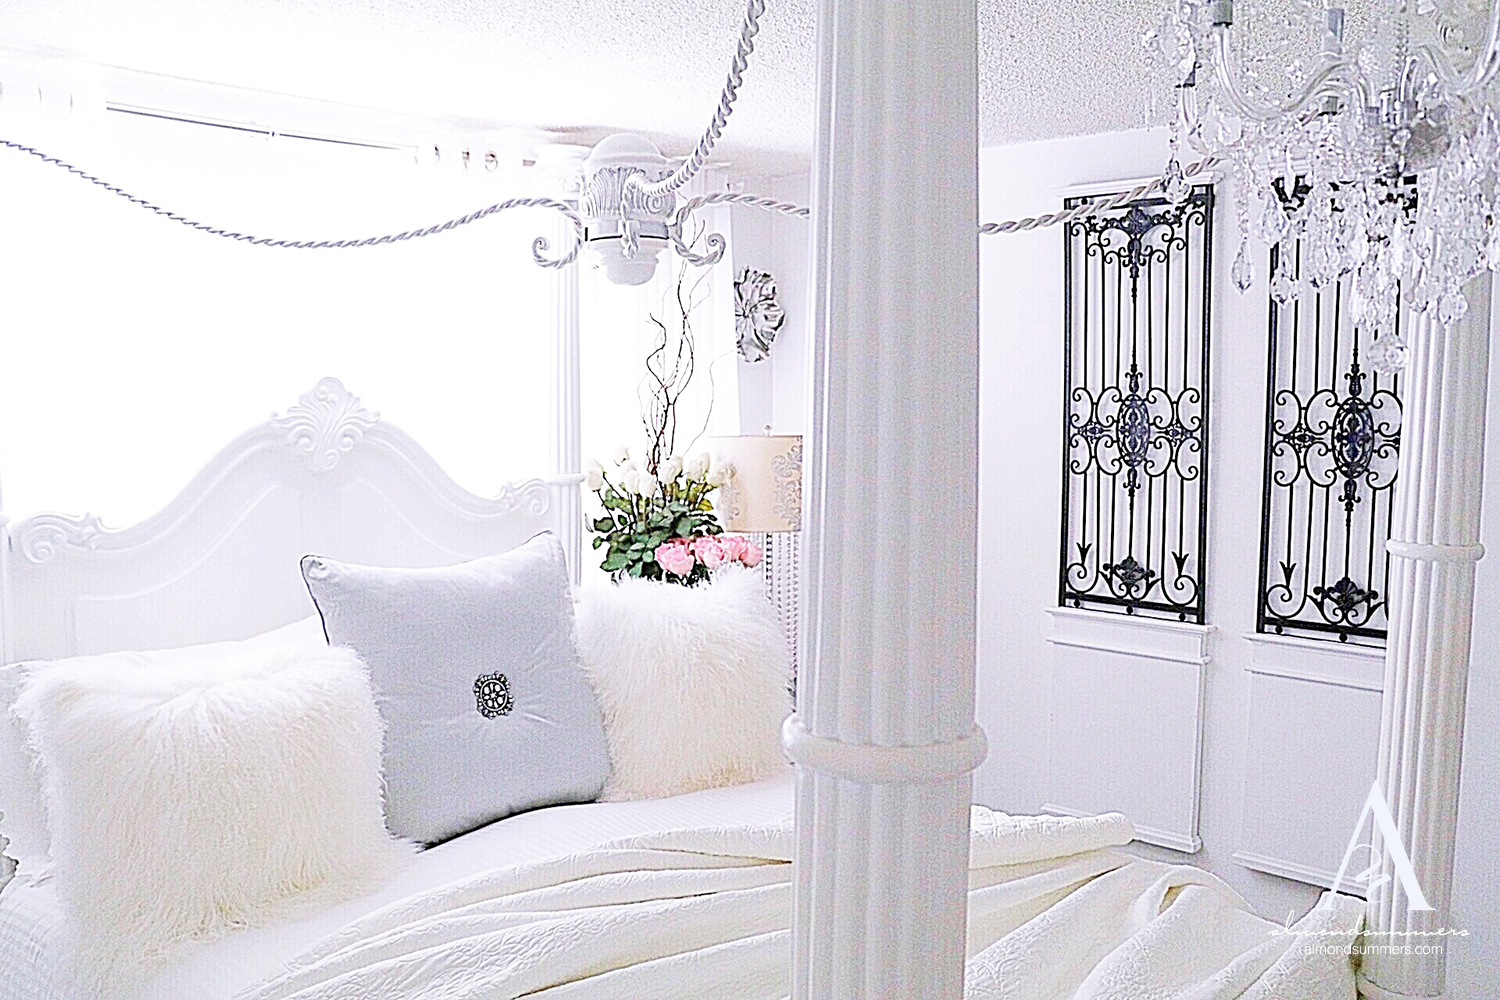 How to make bed sheets white again | Bright white bed sheets | Where to buy white bed sheets | Make Sheets Whiter